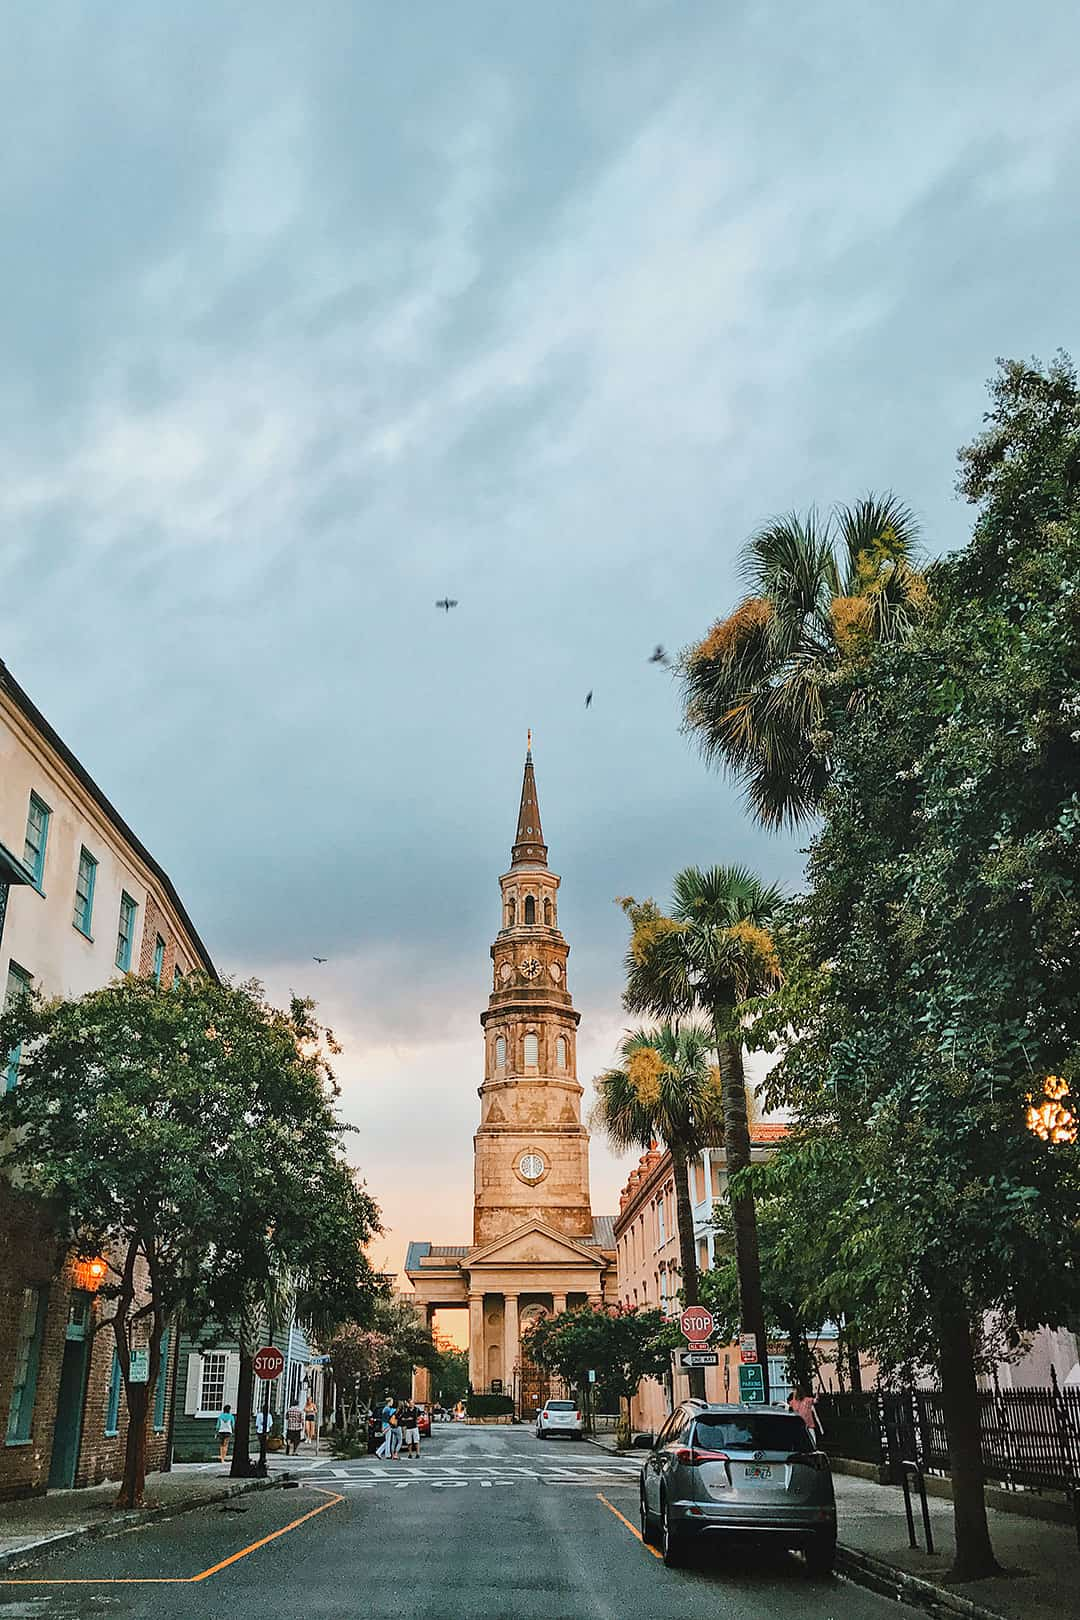 St Philips Church + 25 Best Free Things to Do in Charleston SC